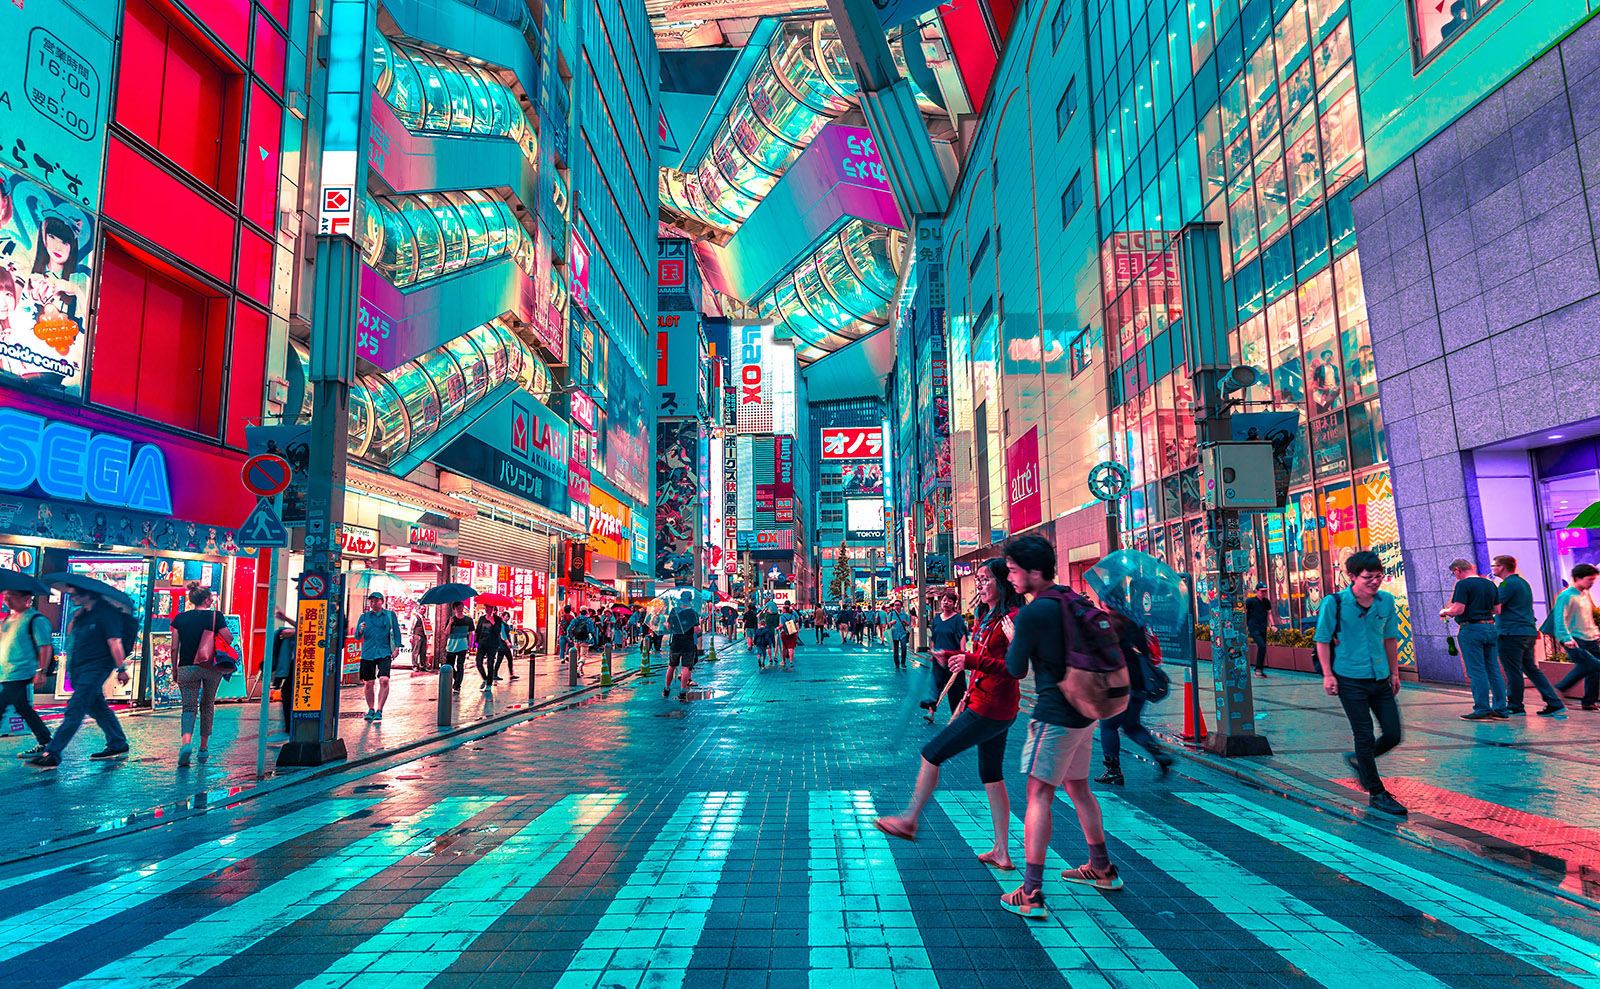 street in tokyo crowded with people and lit by neon